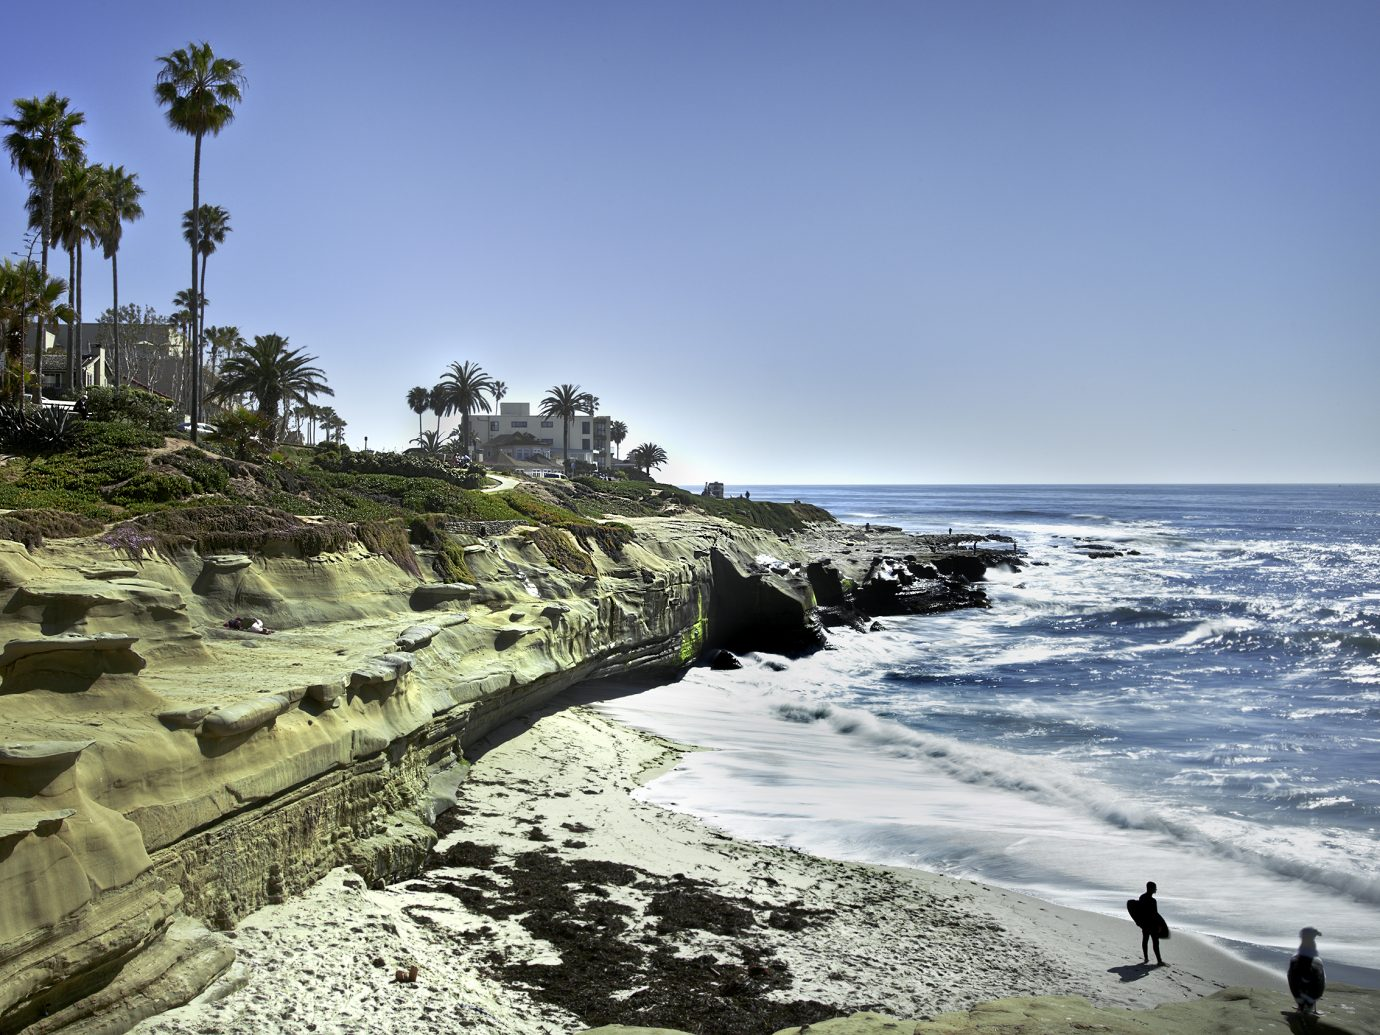 La Jolla Shores Coastline, San Diego California USA